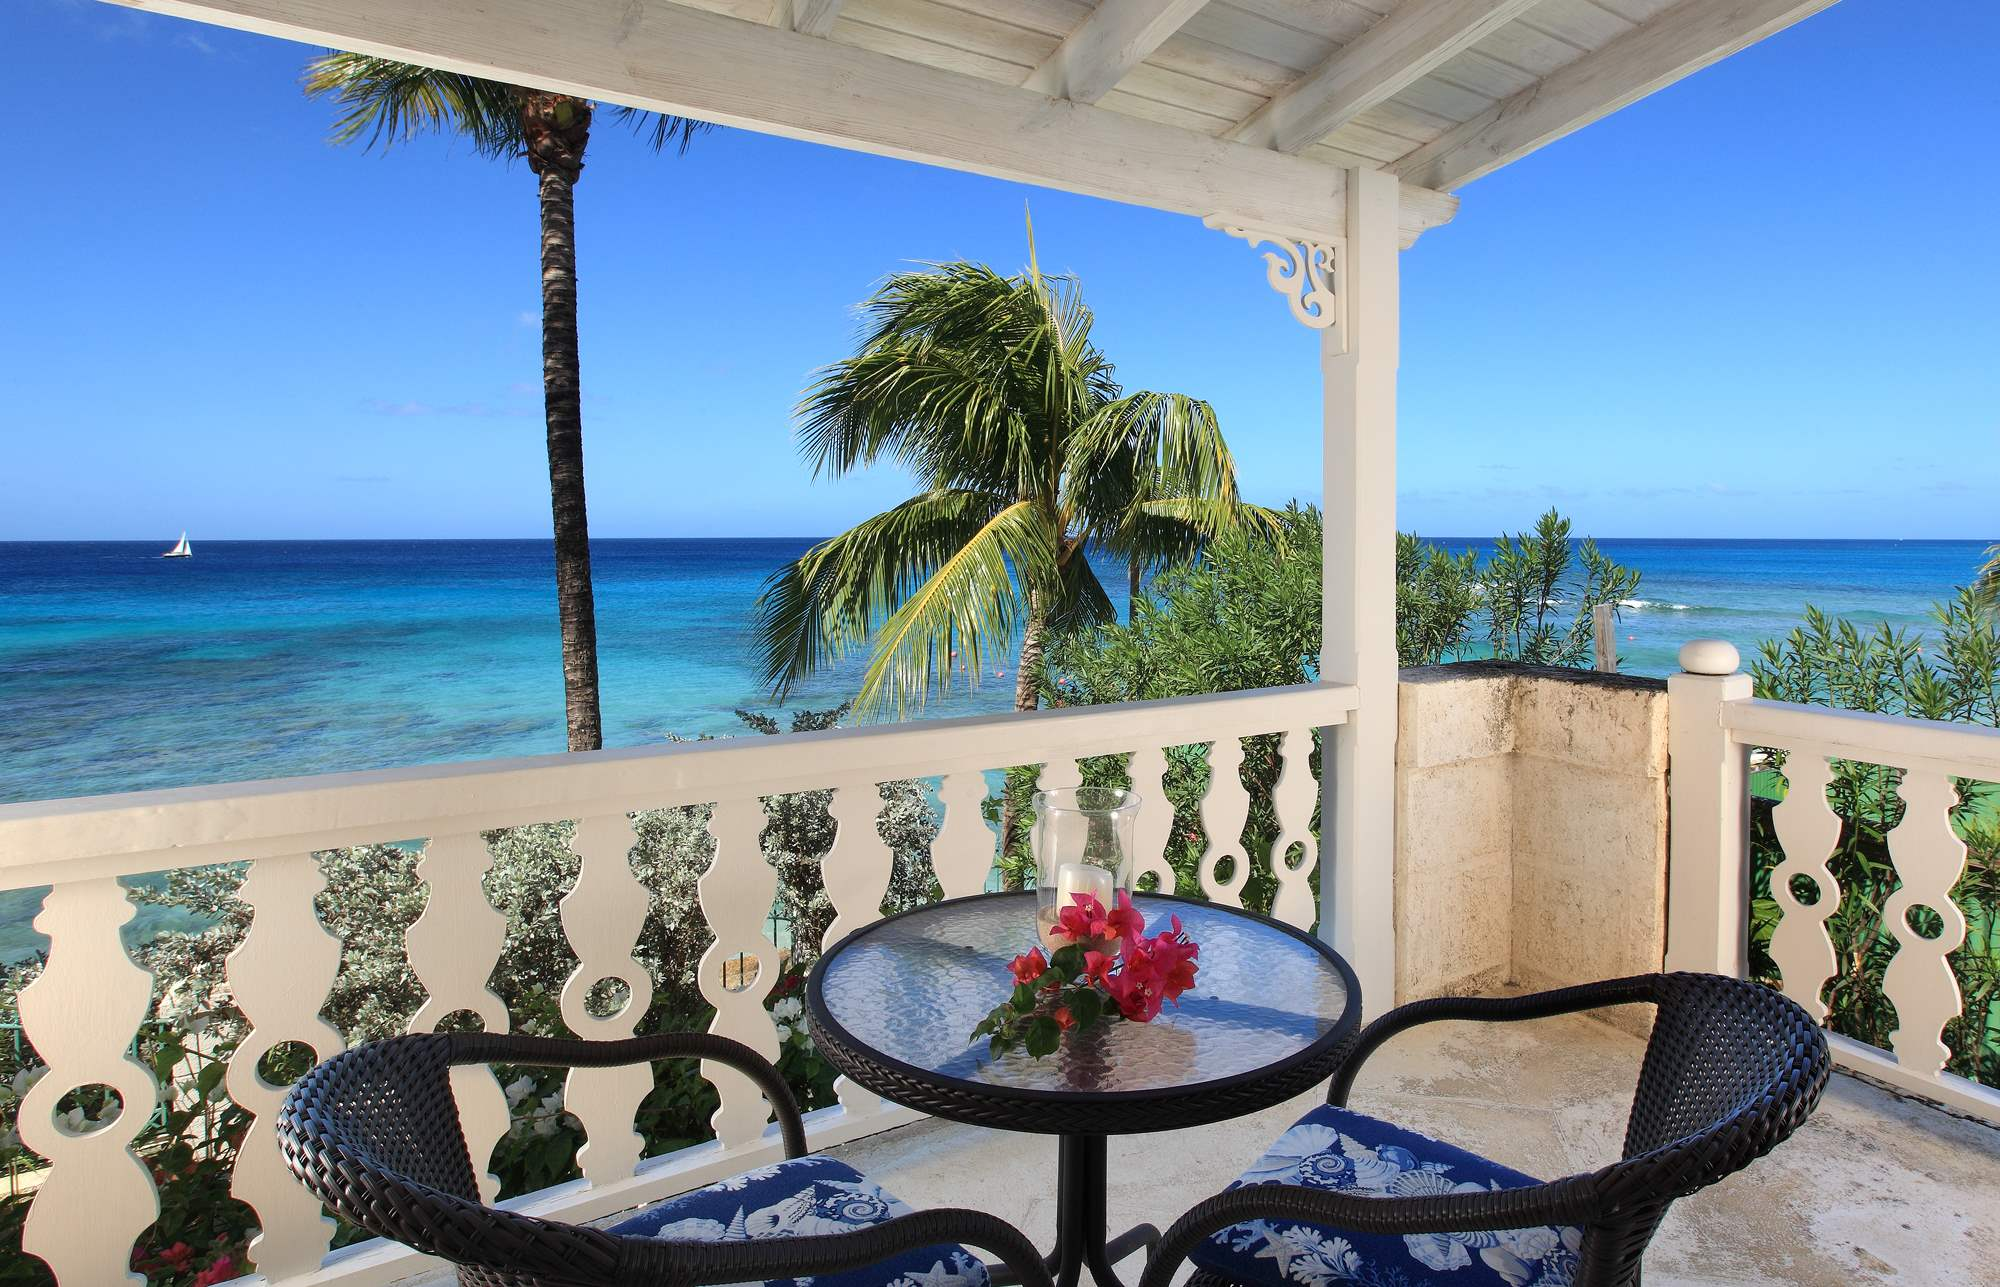 Caprice, 4 bedroom villa in St. James & West Coast, Barbados Photo #2